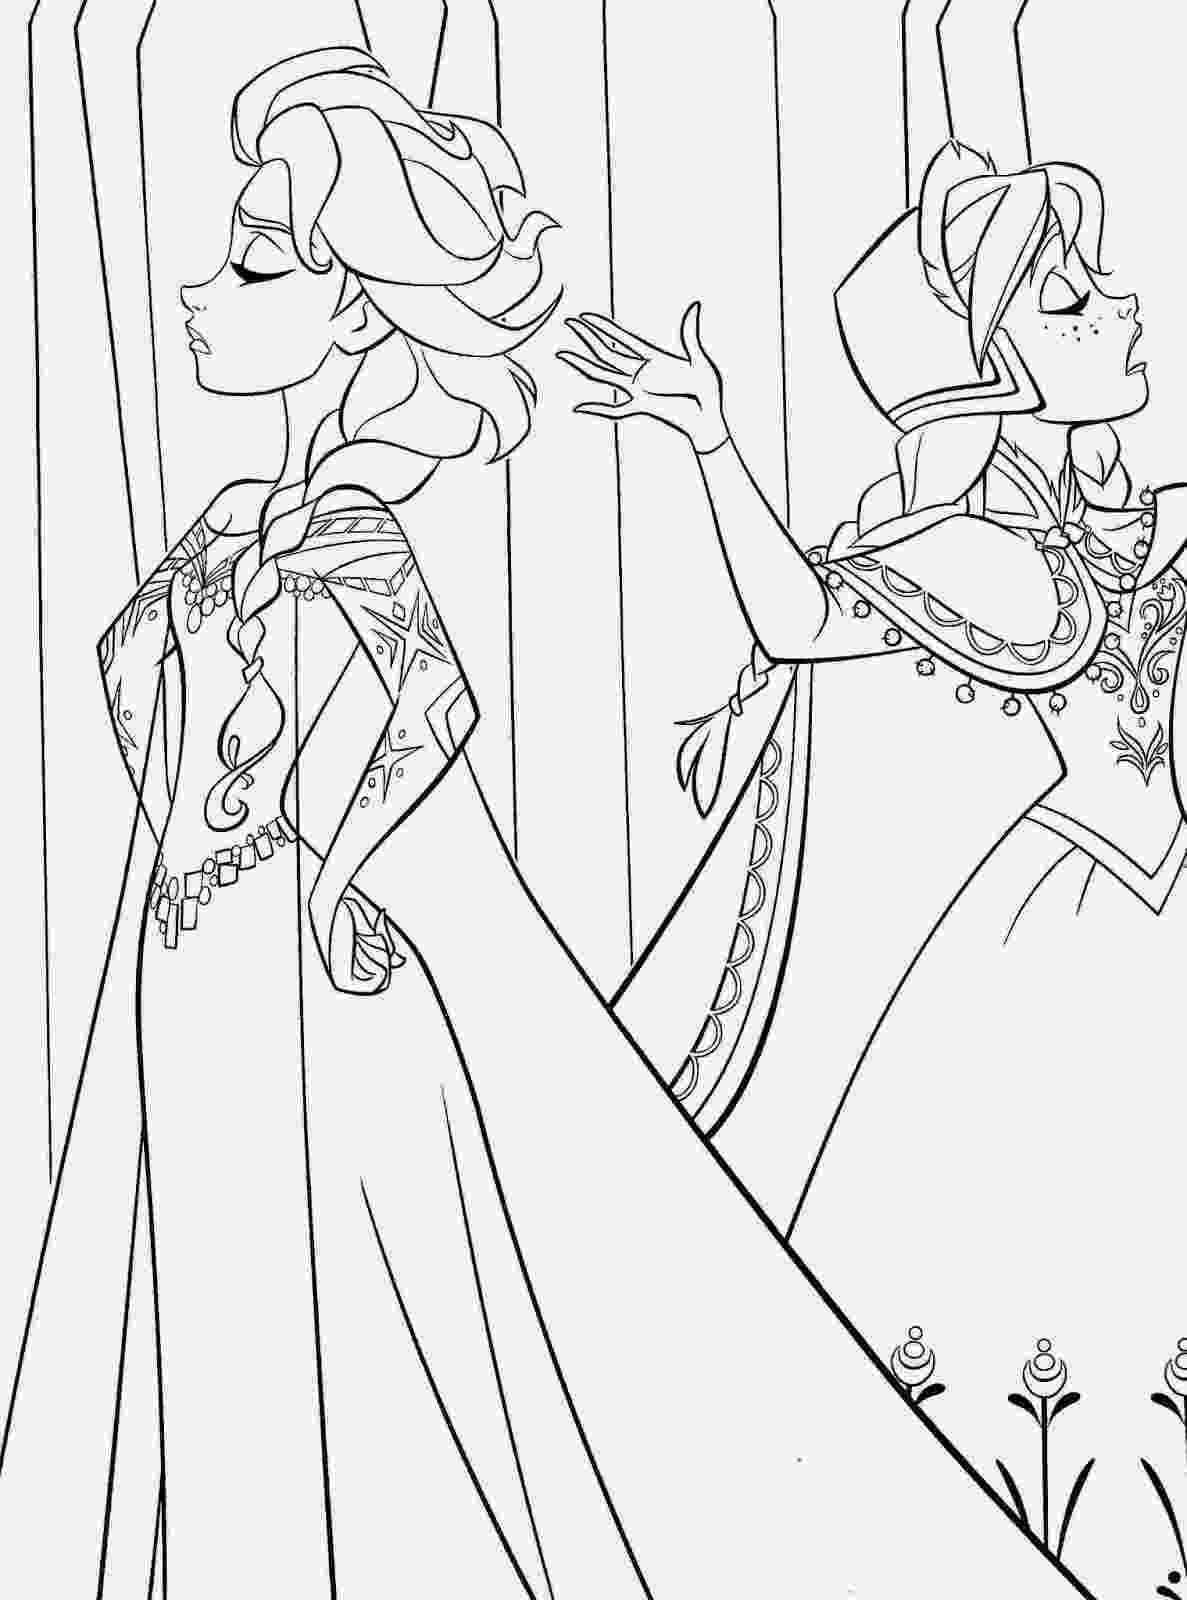 coloring frozen free printable frozen coloring pages for kids best coloring frozen 1 5